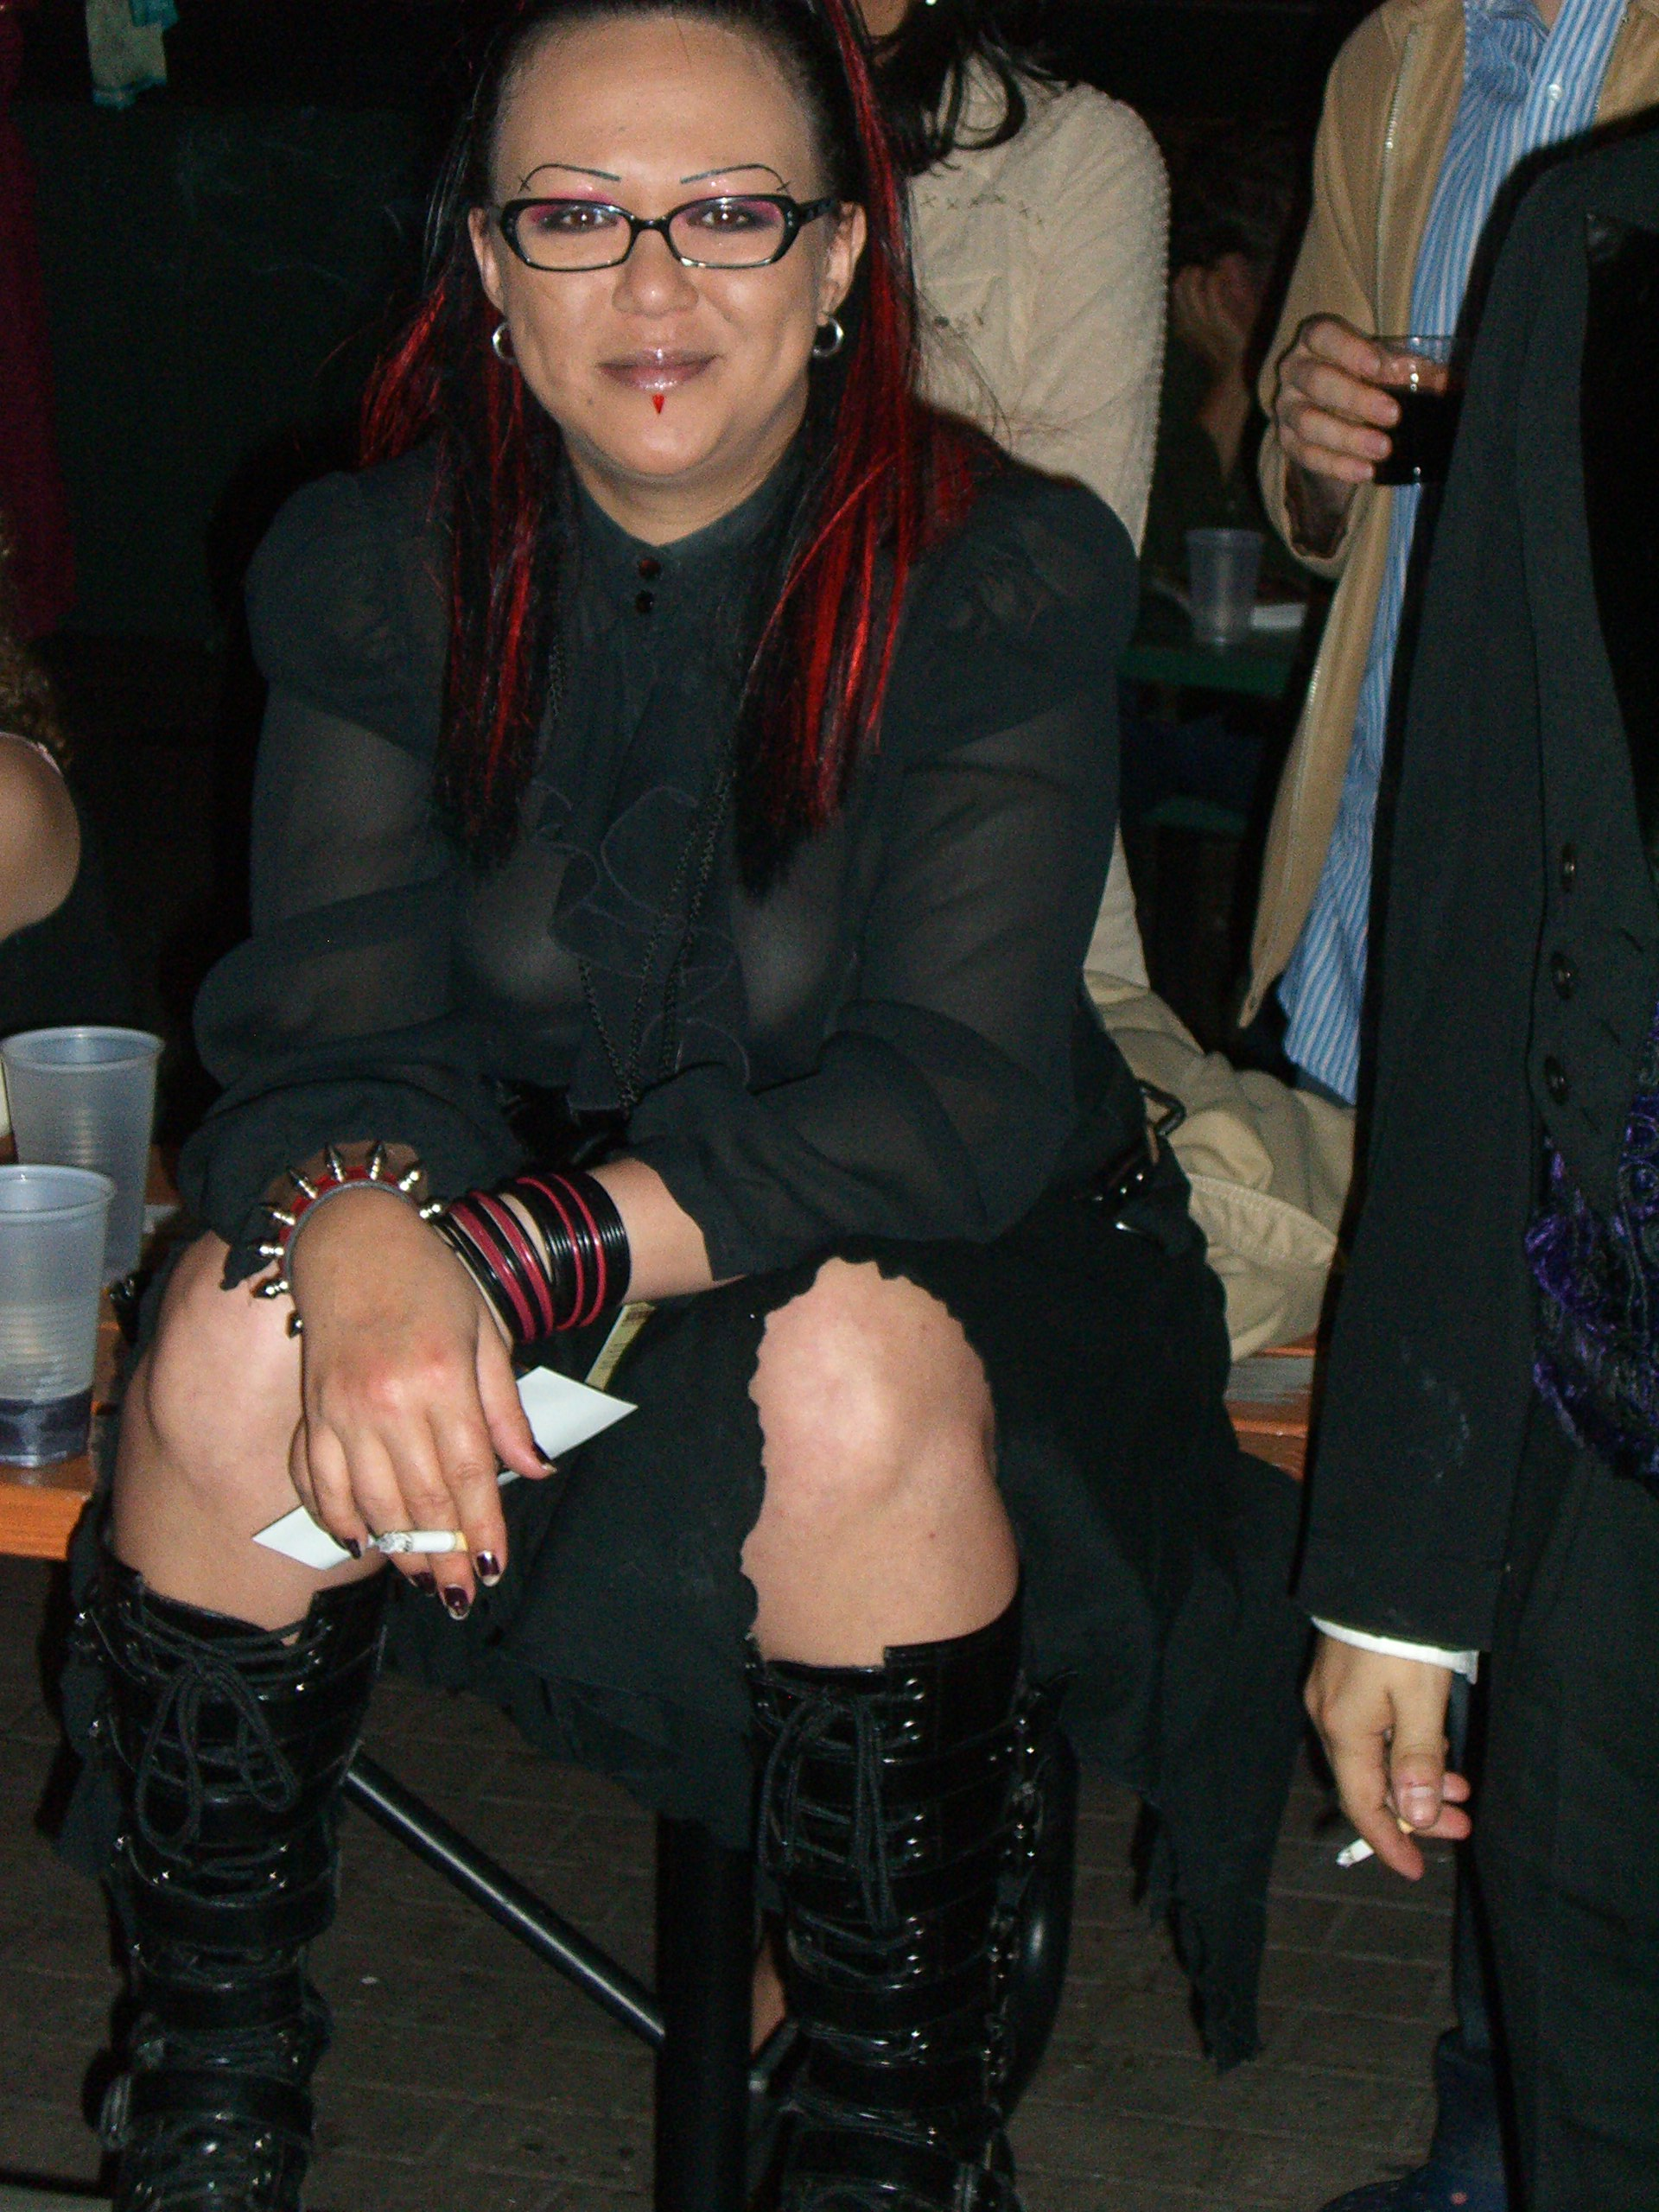 A costumer with long red-streaked hair and matching red-and-black bracelets.